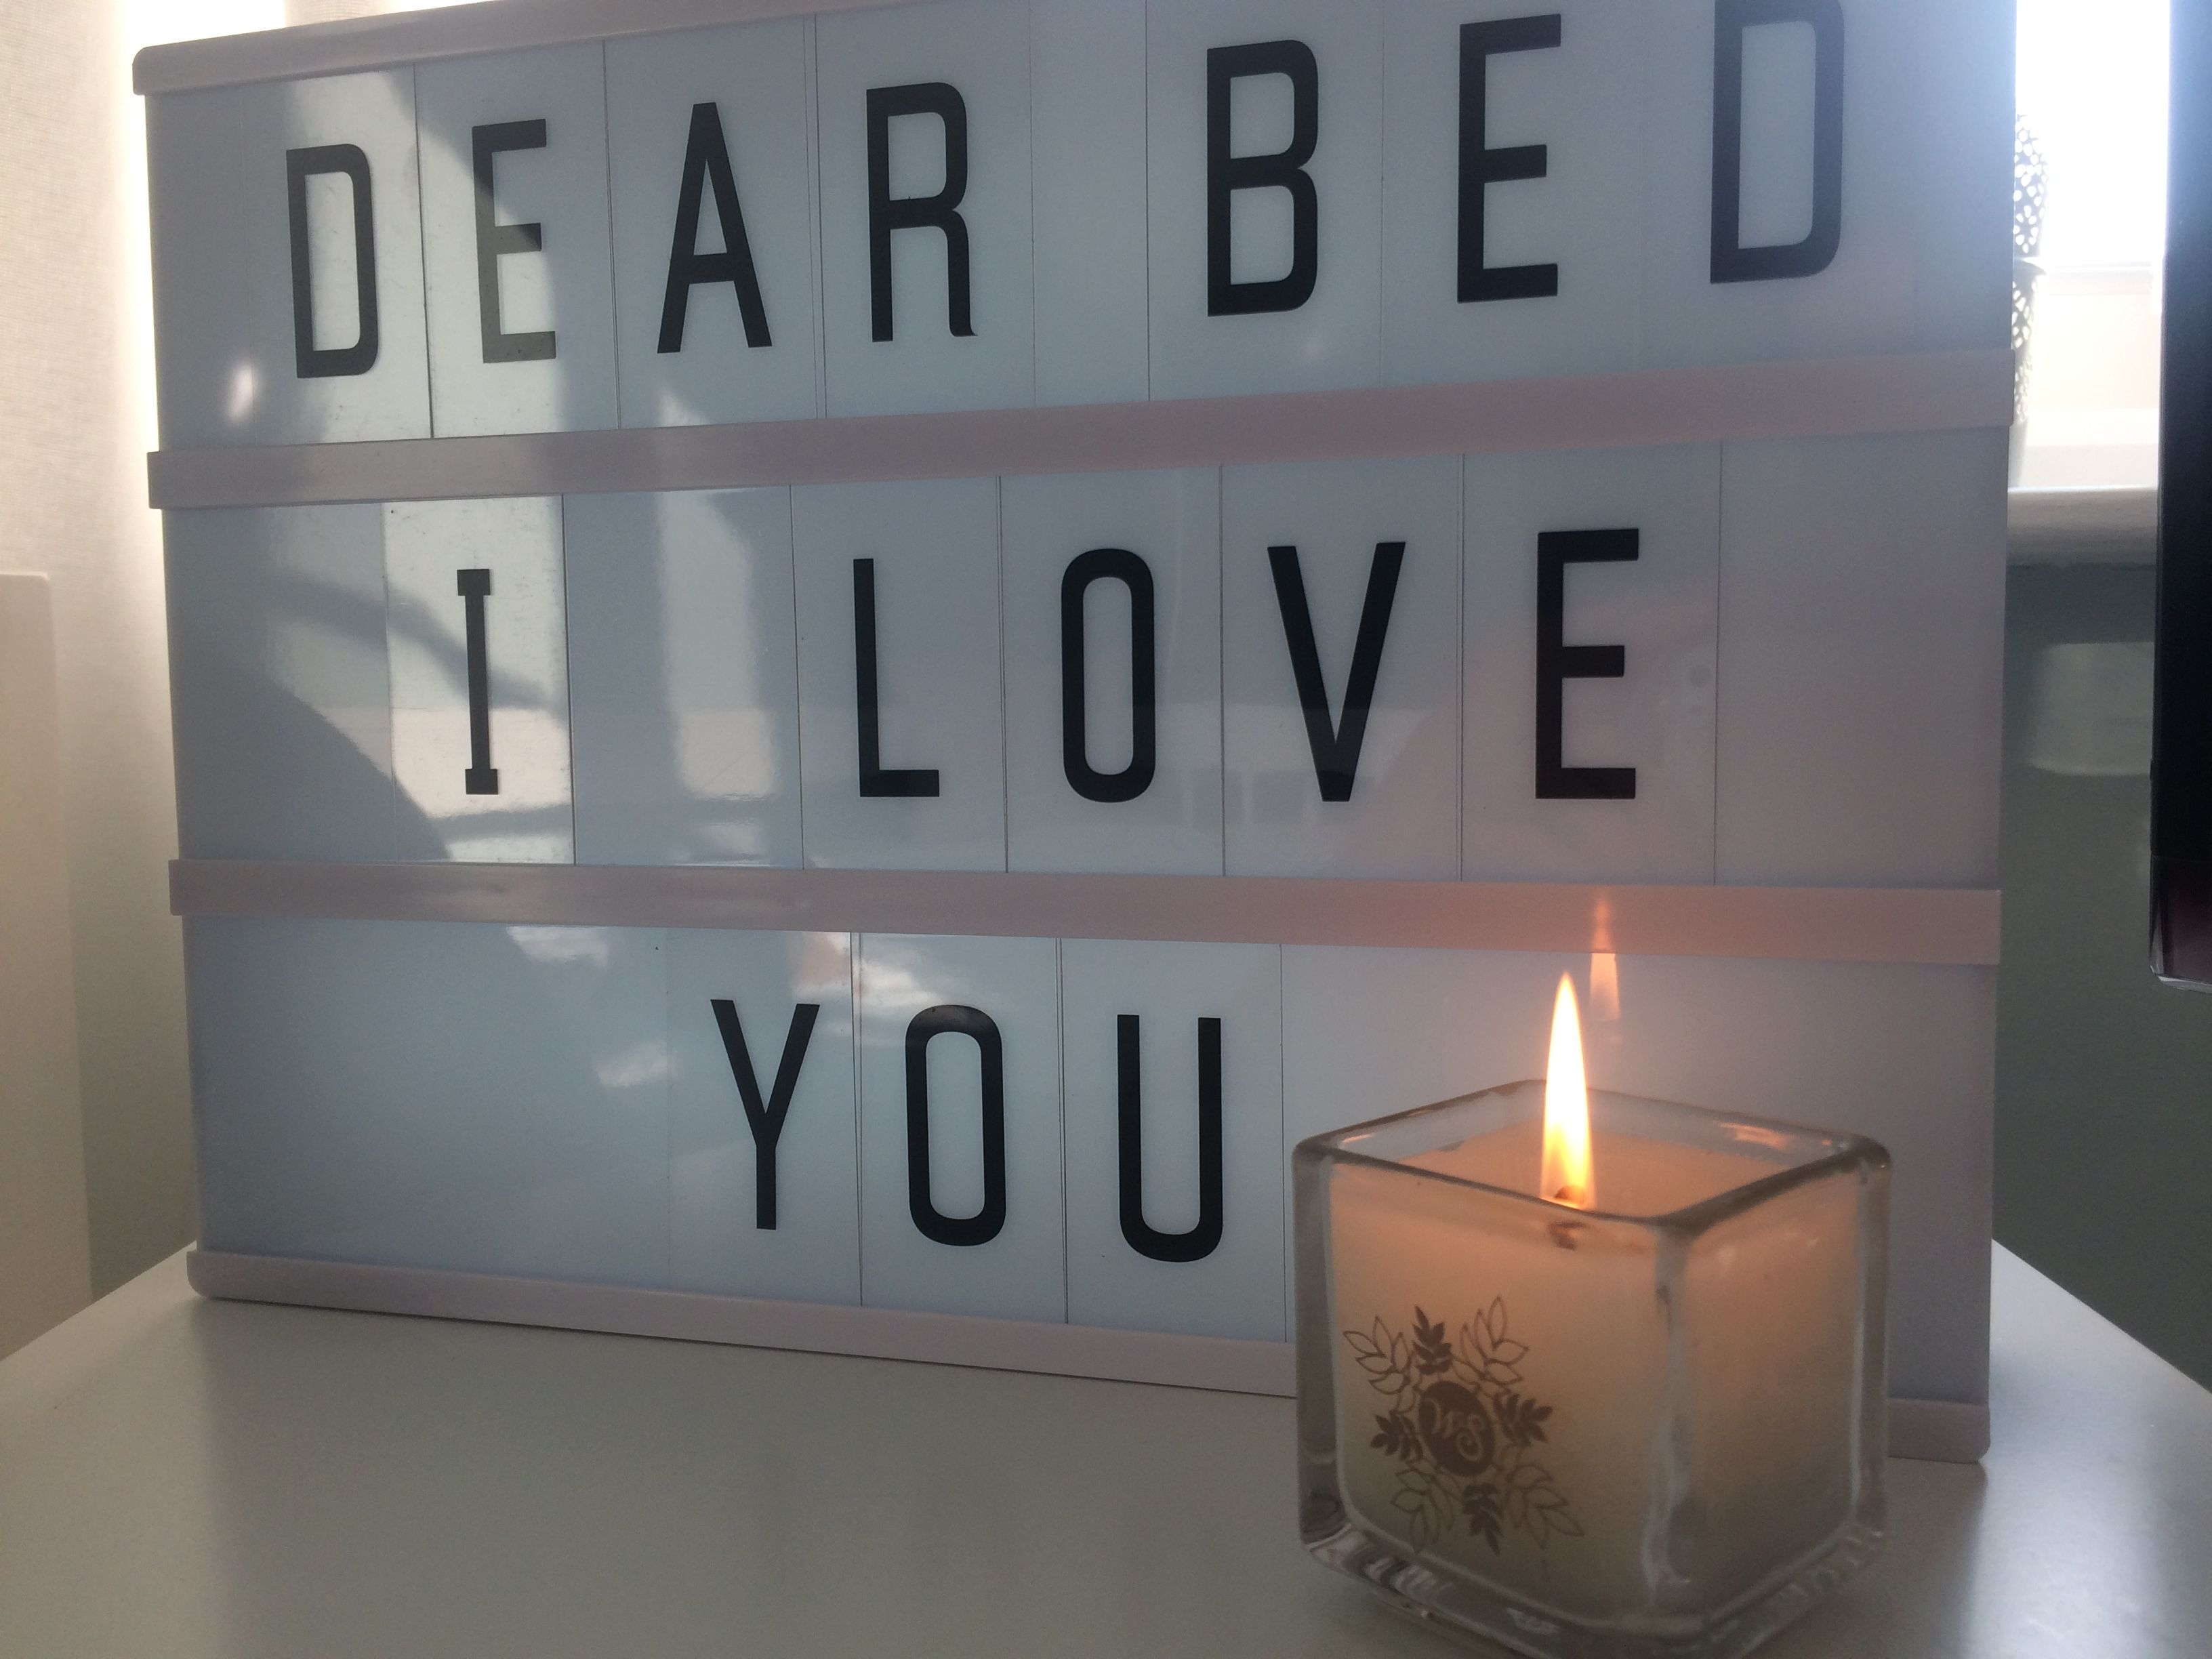 Dear Bed I Love You Lightbox Quote Really Cute Light Up